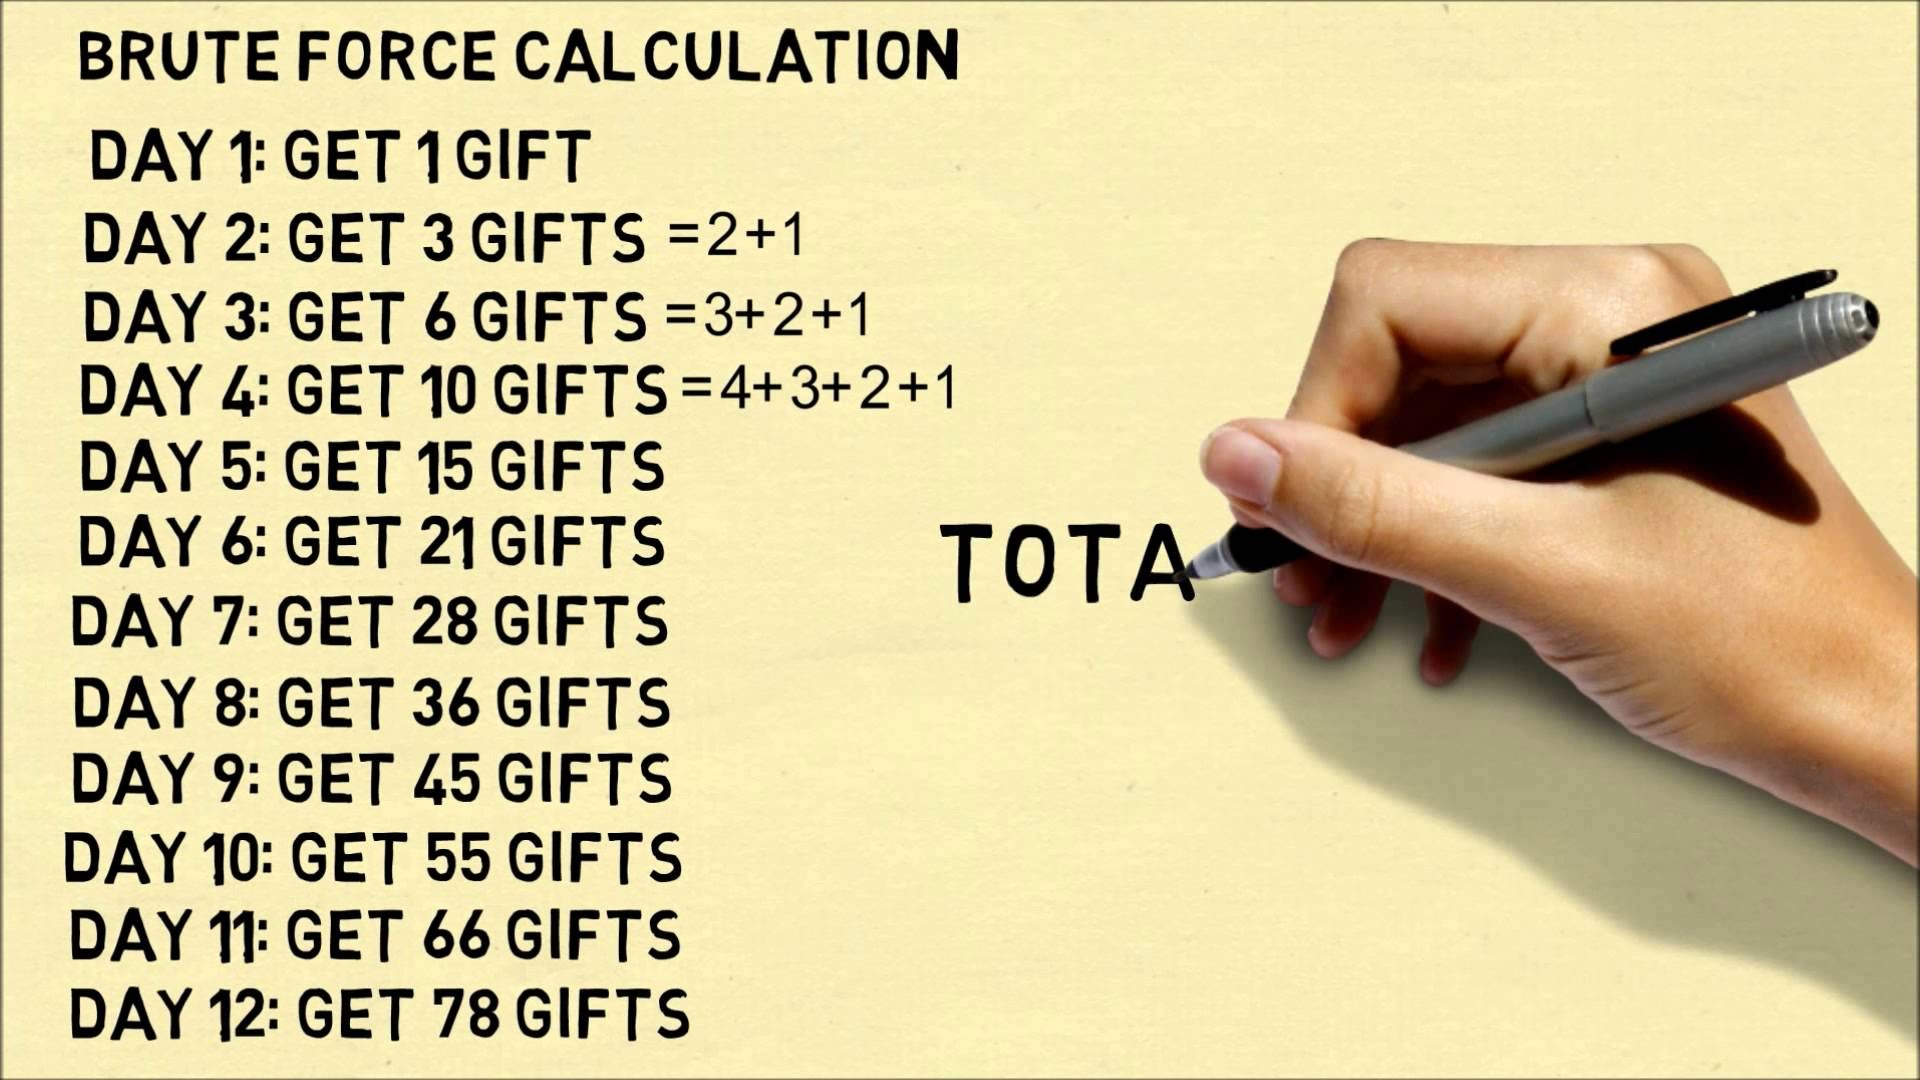 in the twelve days of christmas song how many gifts are given in total whats a general formula for n days - How Many Gifts In 12 Days Of Christmas